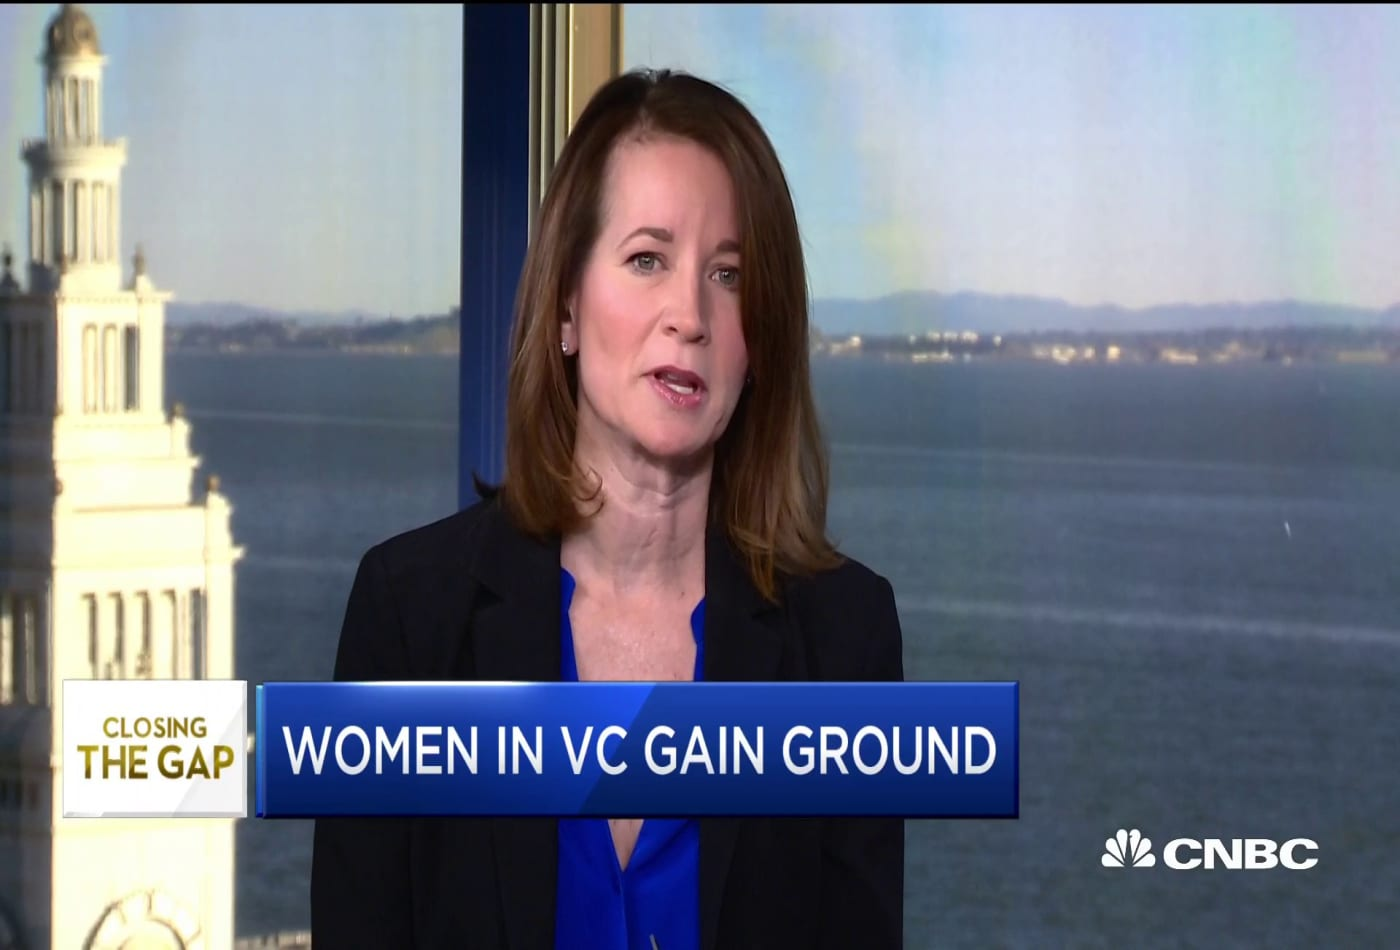 Report: 65% of VC firms have no female partners